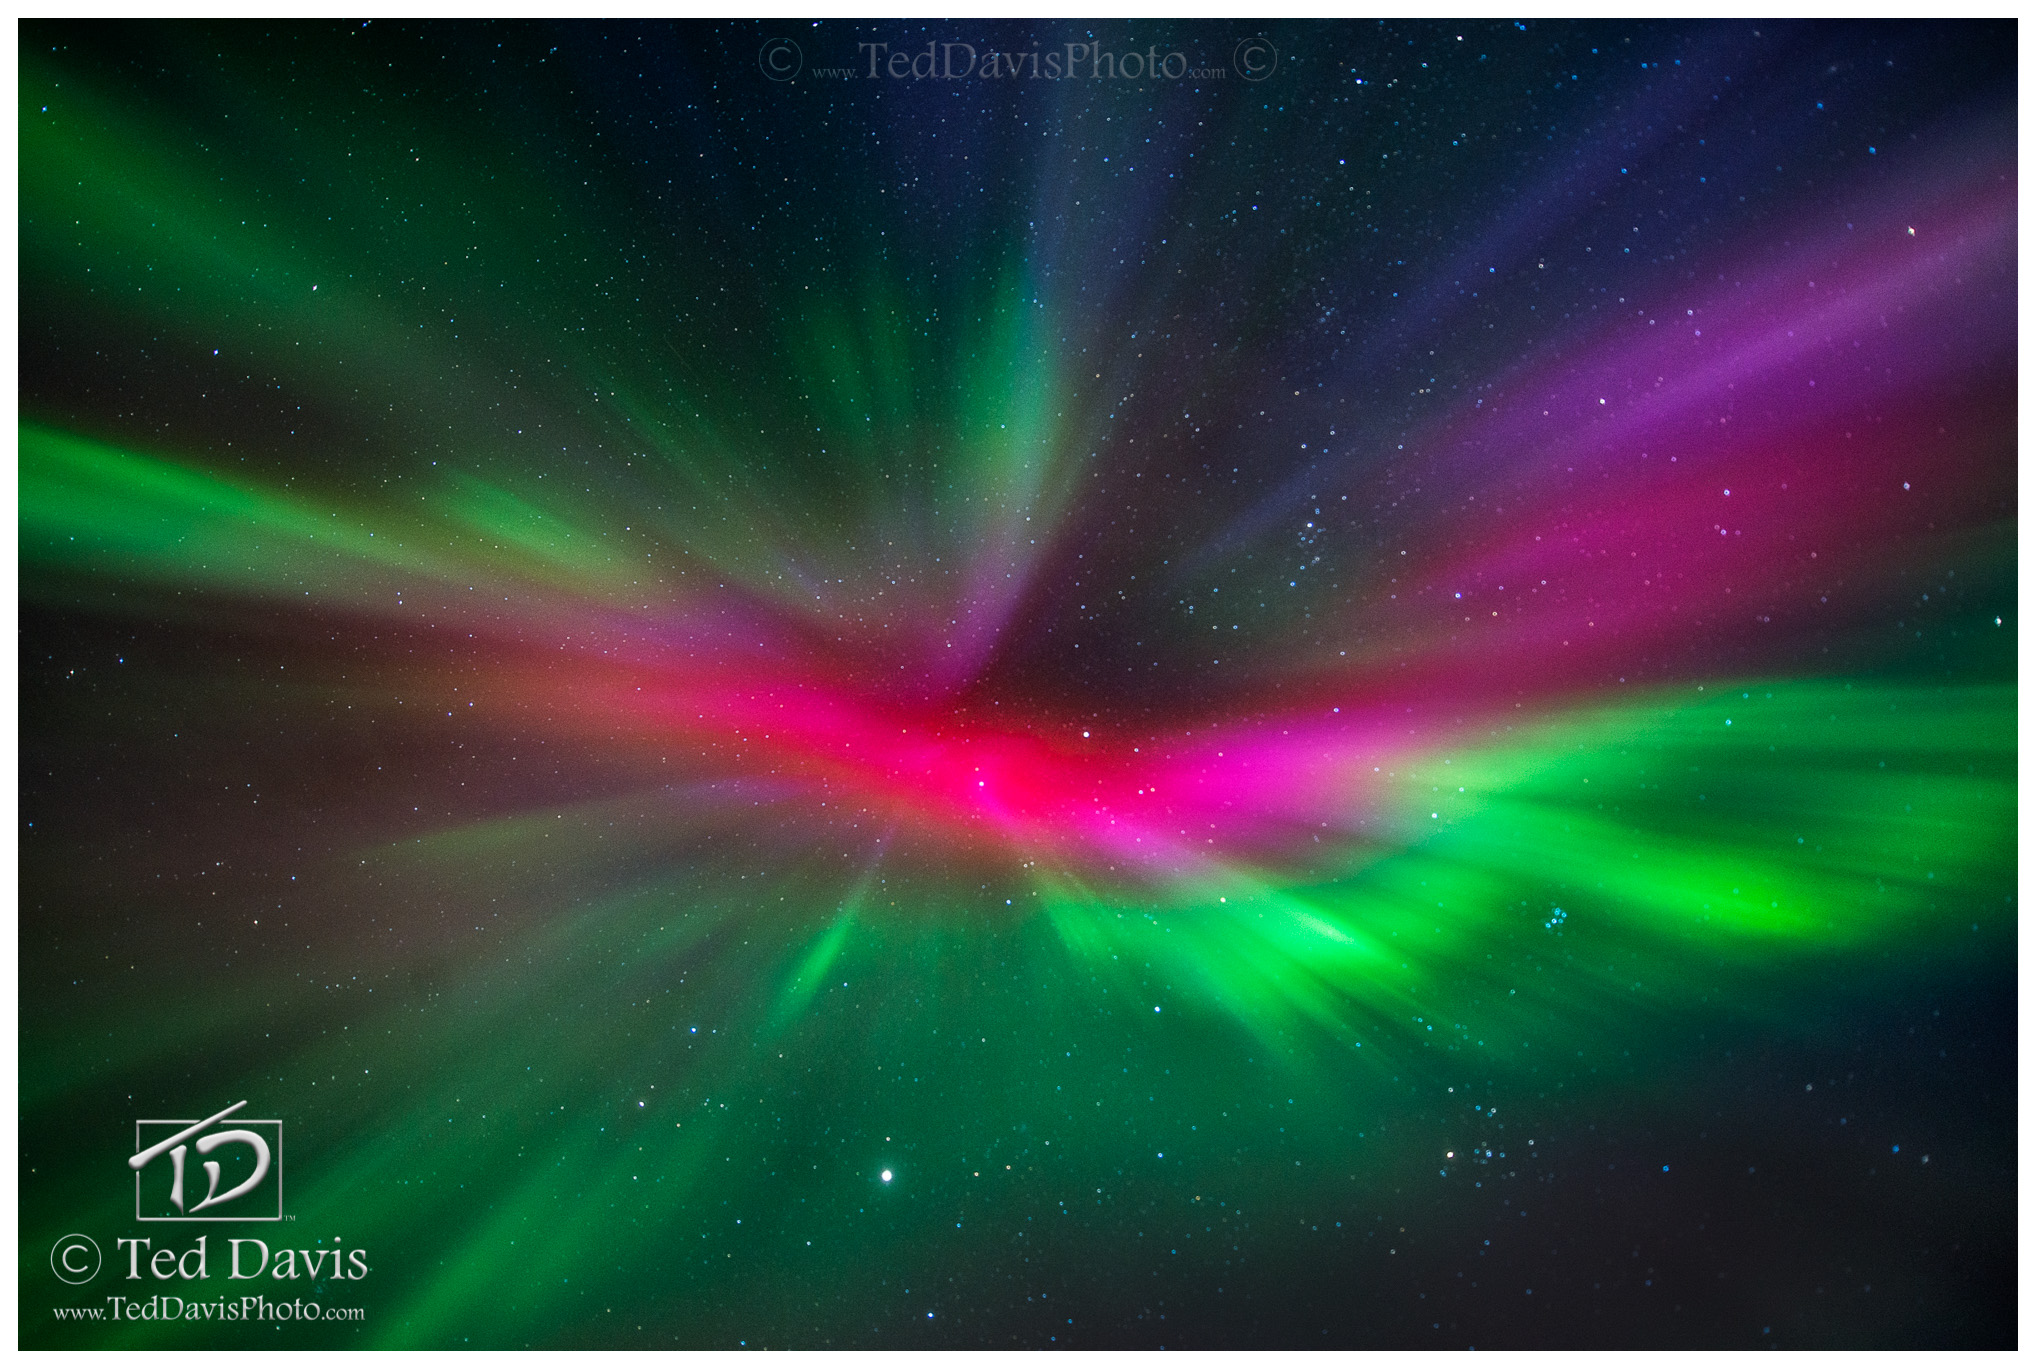 aurora, northern lights, iceland, horizon, stars, lights, pink, green, beautiful, eye, photo